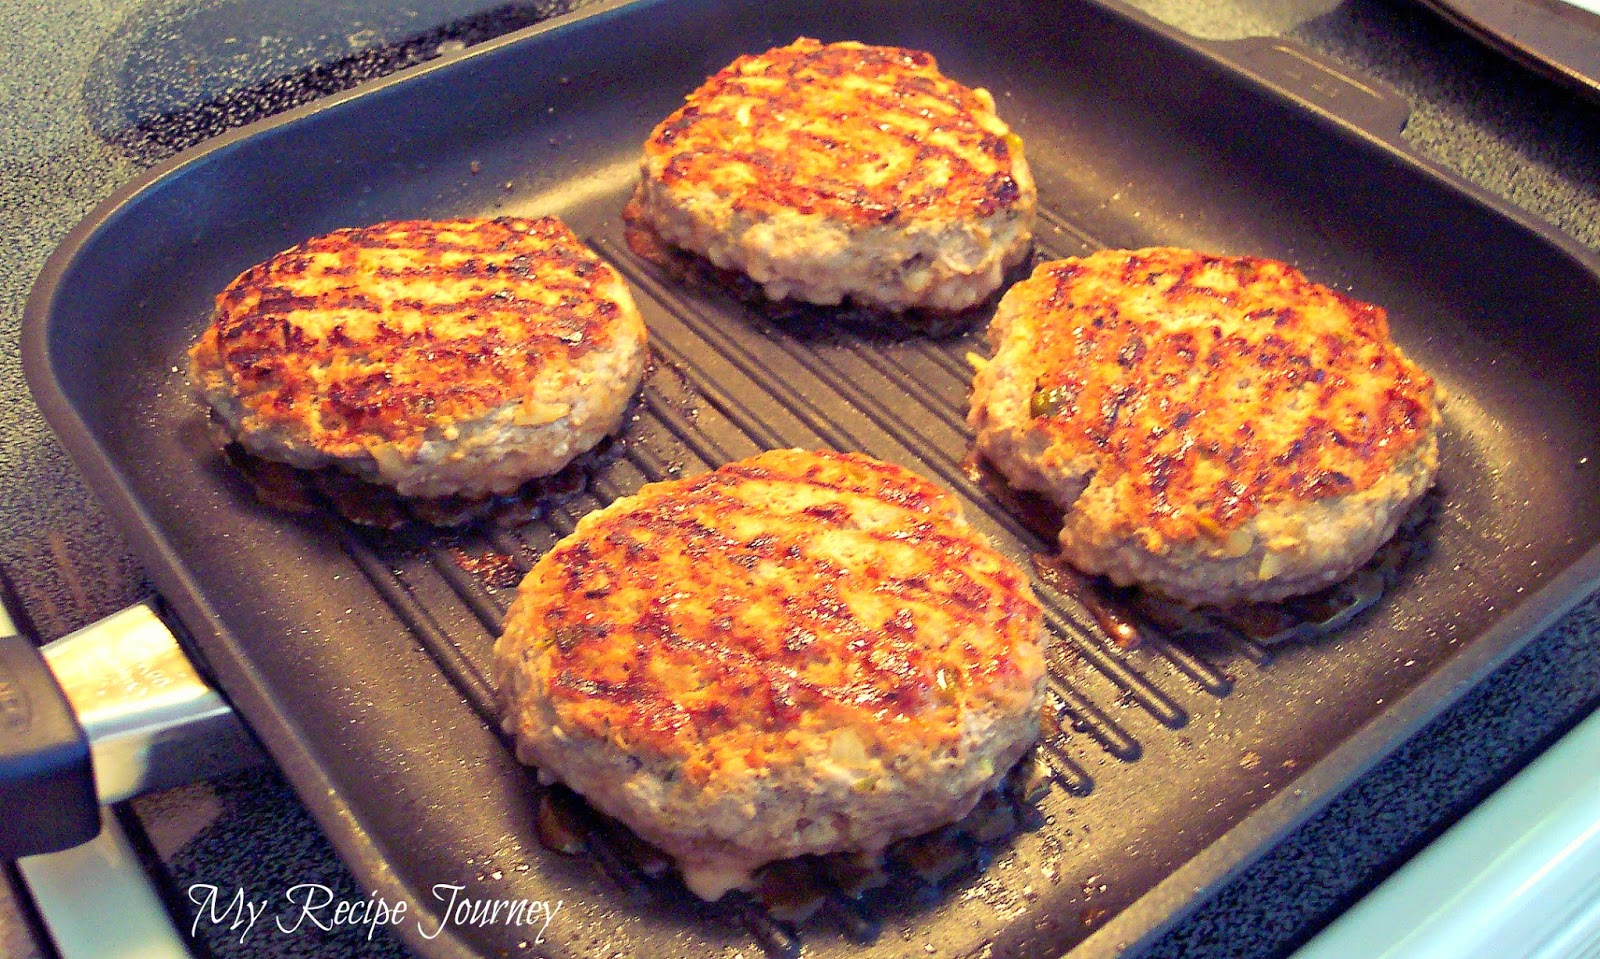 Smoky Spicy Turkey Burger with Caramelized Onions and Spicy Sweet Mayo